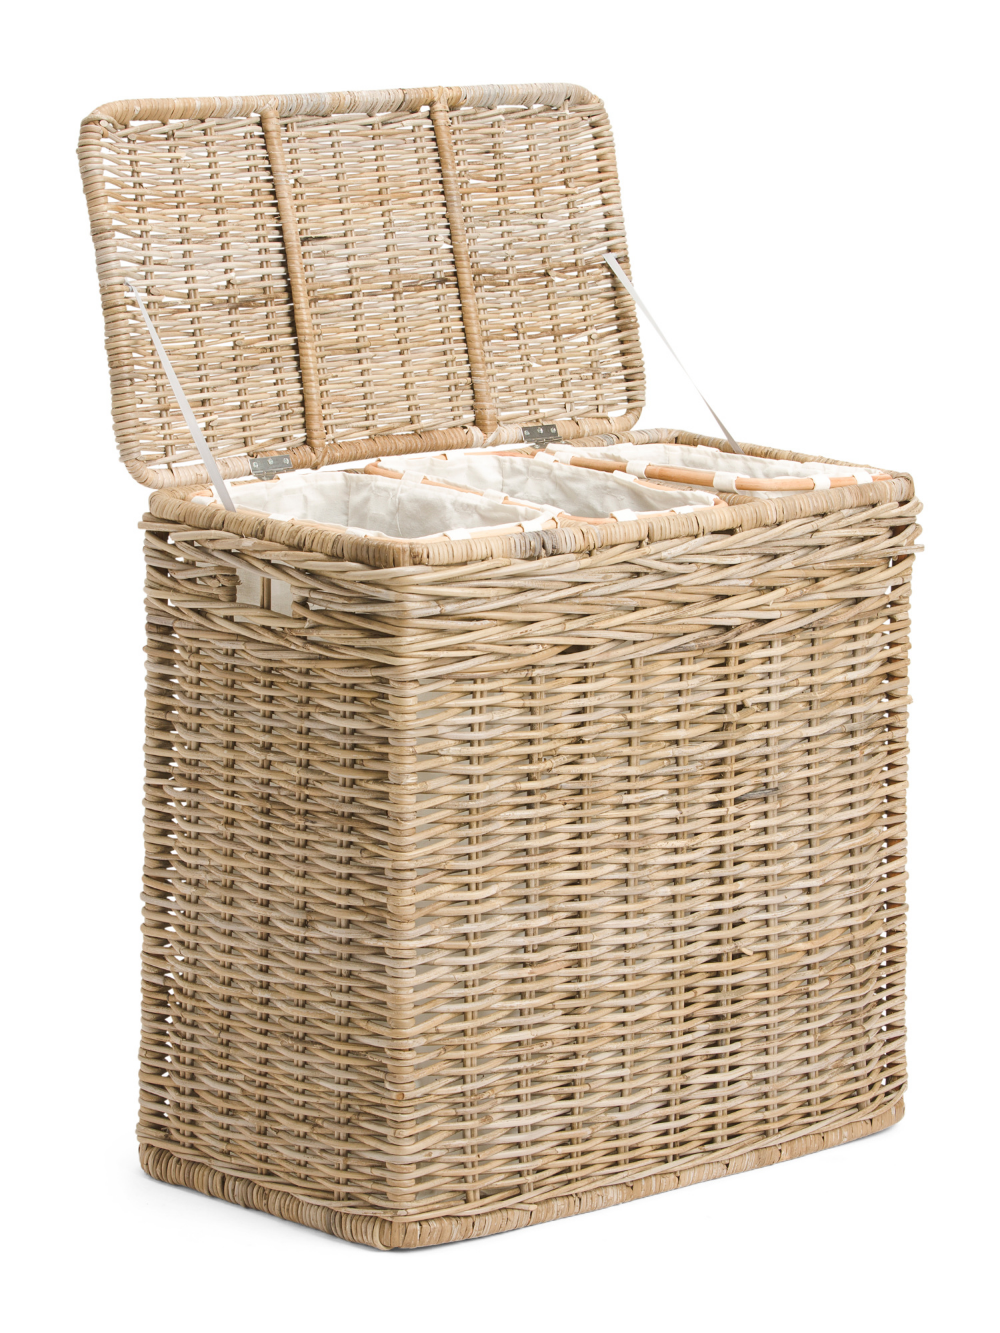 3 Section Kobo Hamper With Lining Bedroom T J Maxx Bedroom